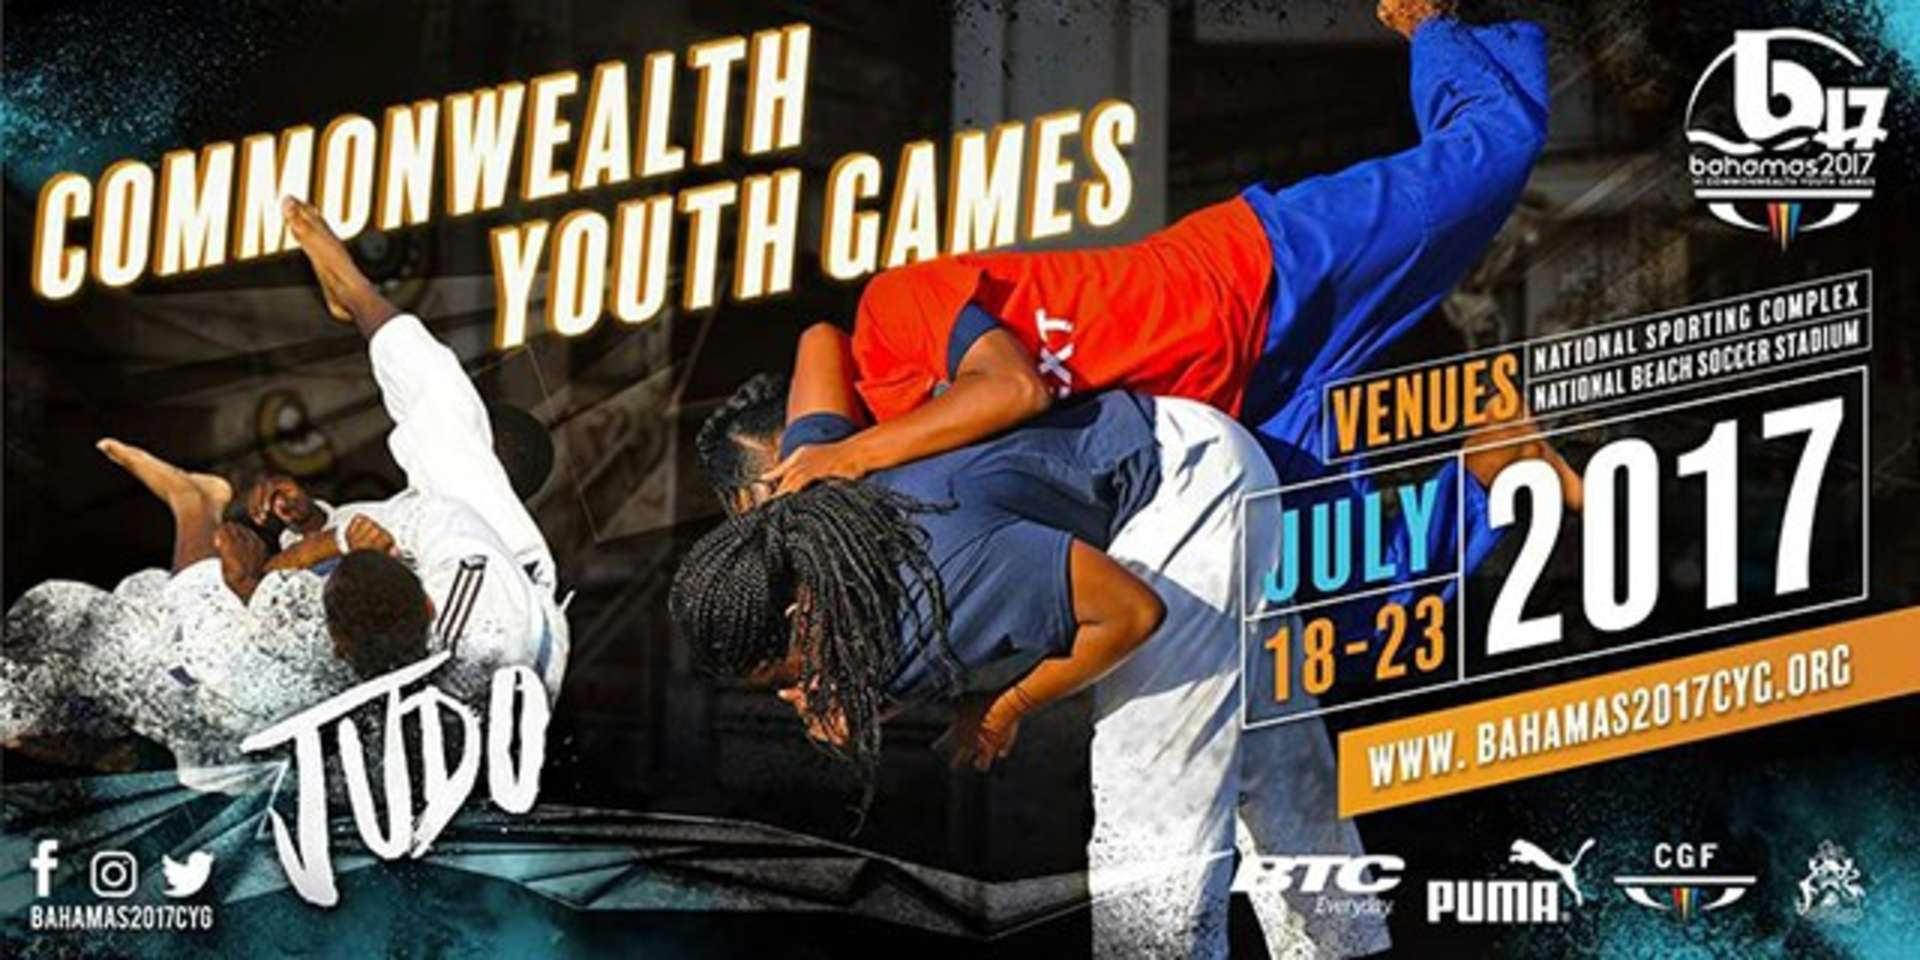 Bahamas commonwealth youth games